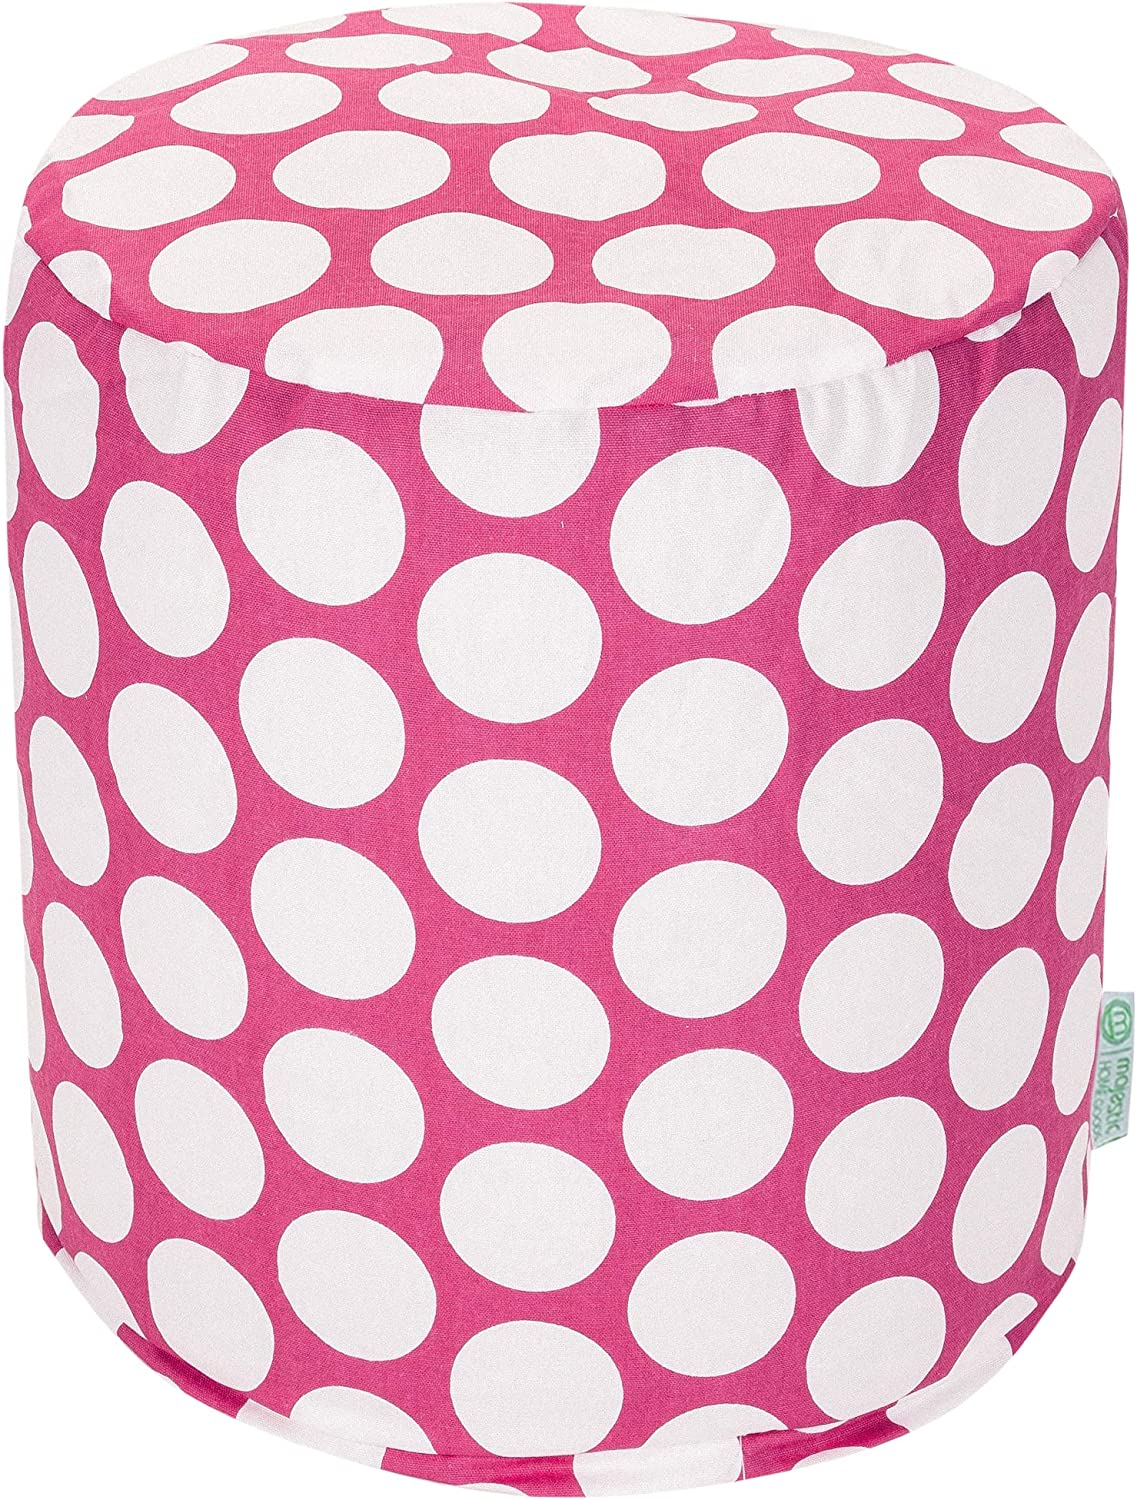 Majestic Home Goods Hot Pink Large Polka Dot Small Pouf